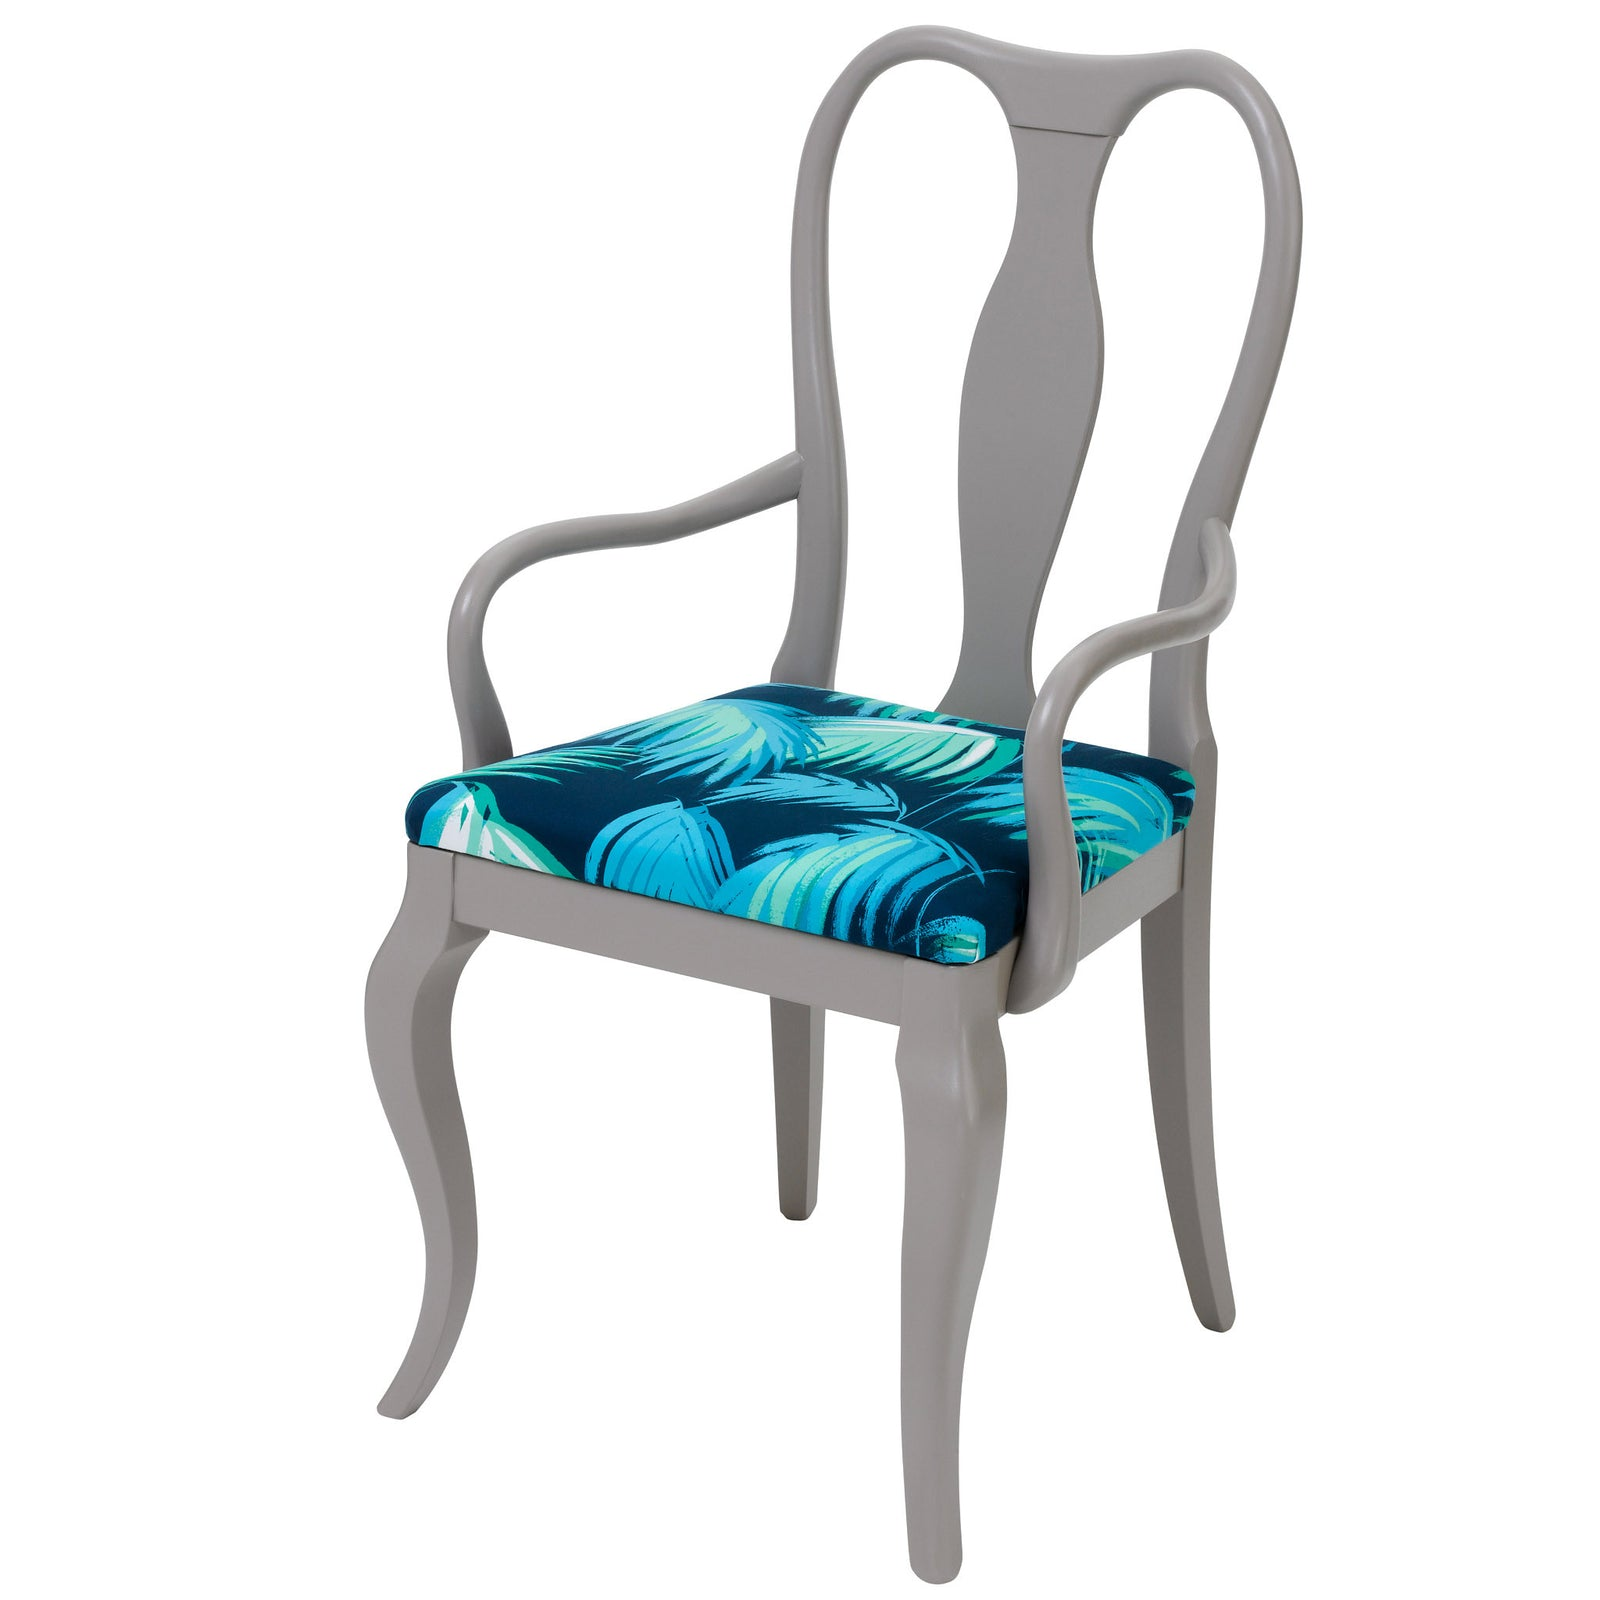 Contemporary Dining Chair upholstered in Matthew Williamson Tropicana, finished in grey